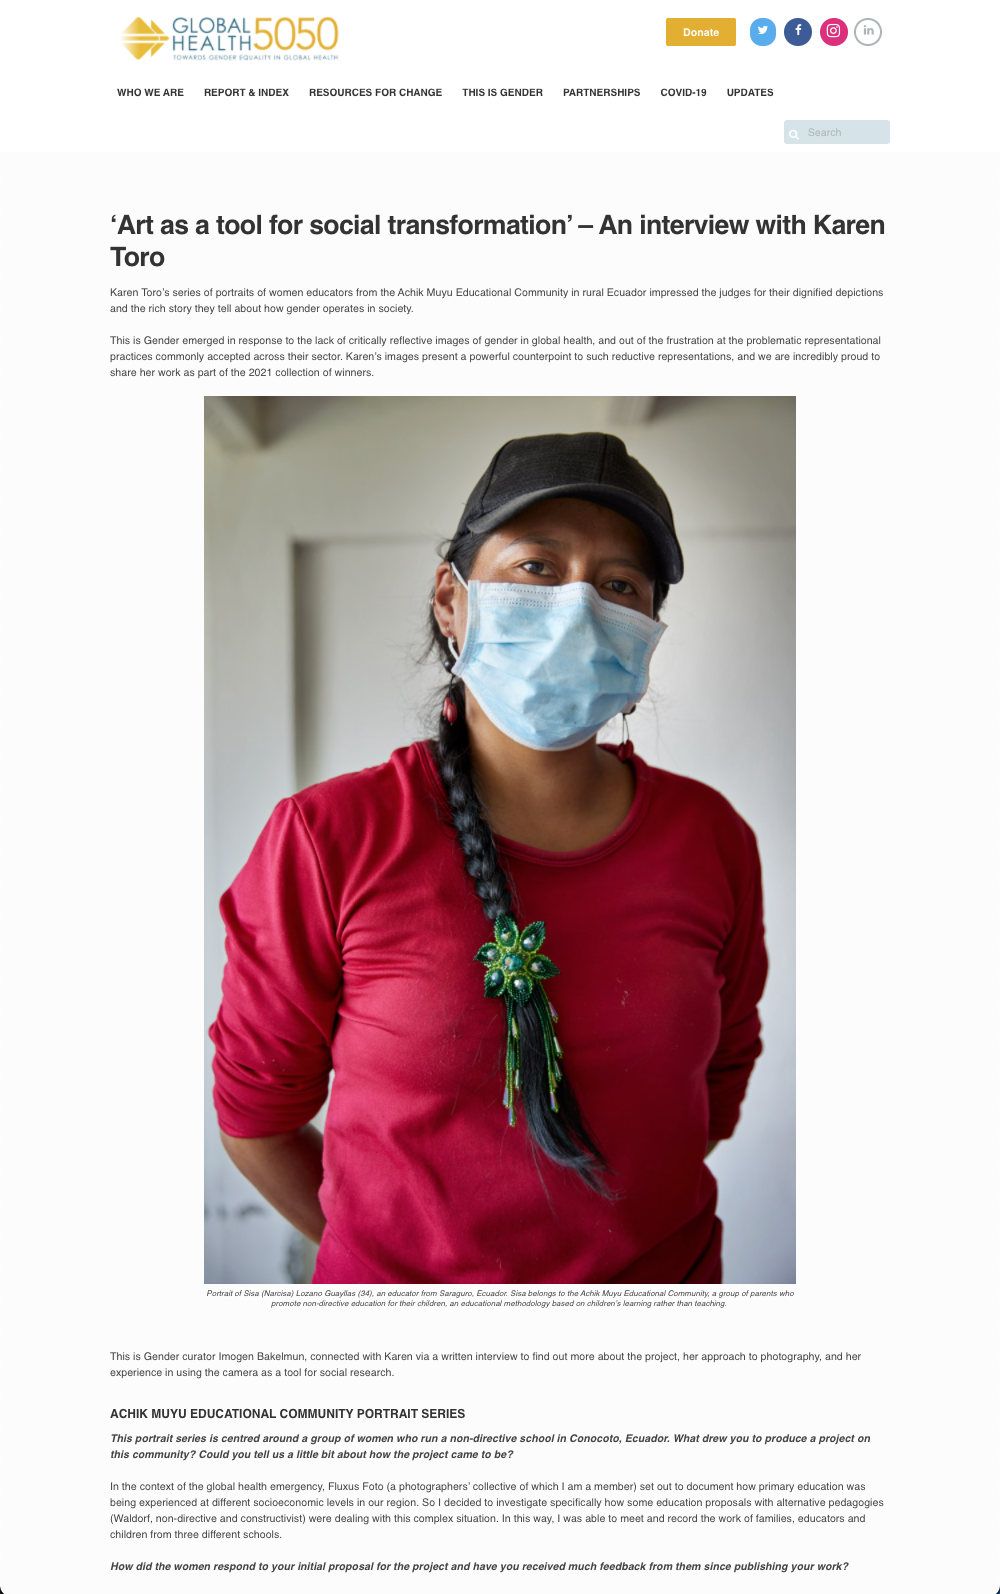 GLOBAL HEALTH 5050 - 2021 - Interview + Publication - web